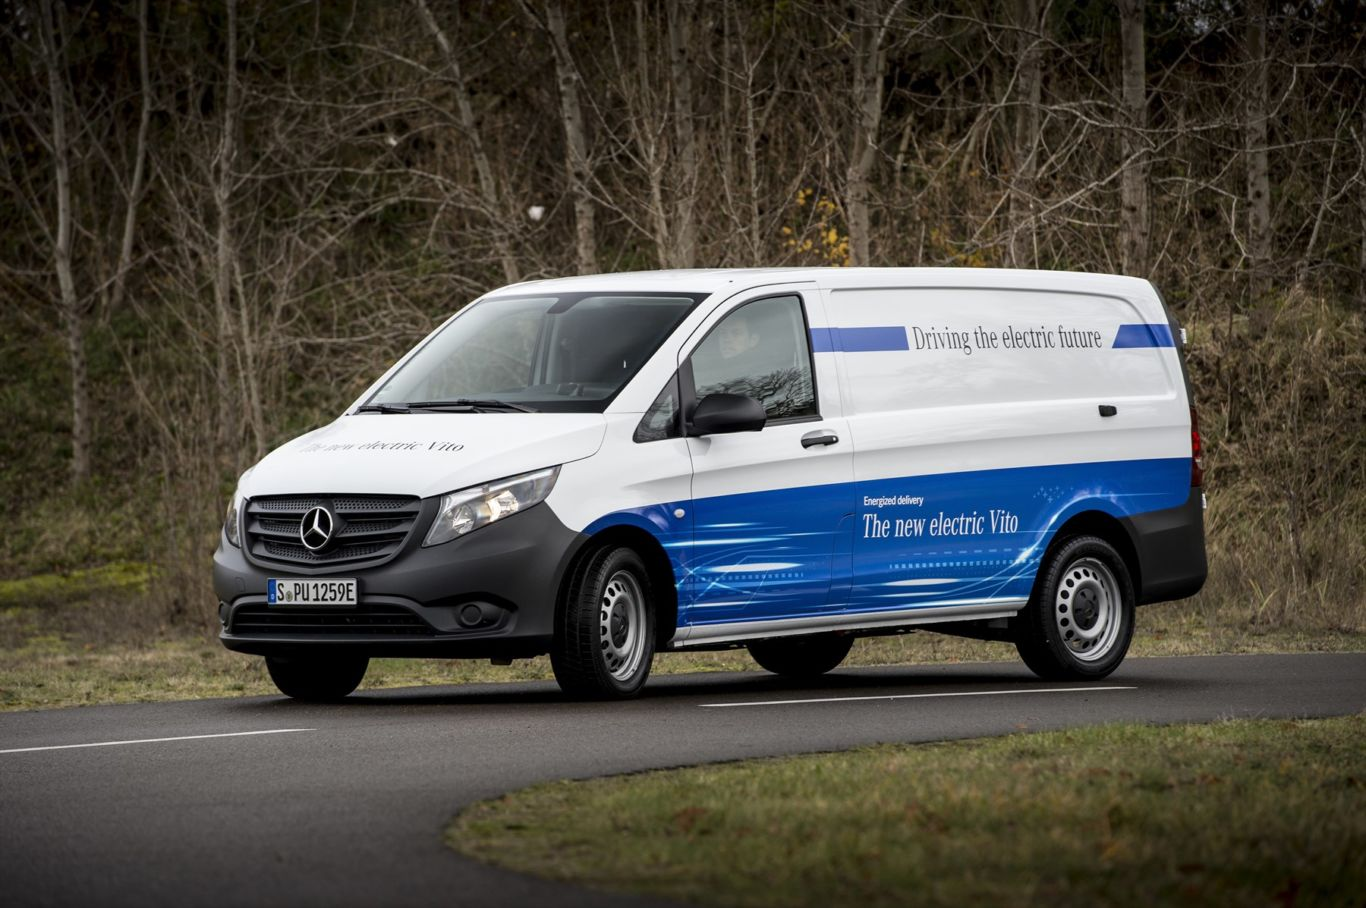 e8ed888638 Mercedes-Benz Vans plans to offer all its commercial van model lines with  electric drive. This will start with the mid-size eVito